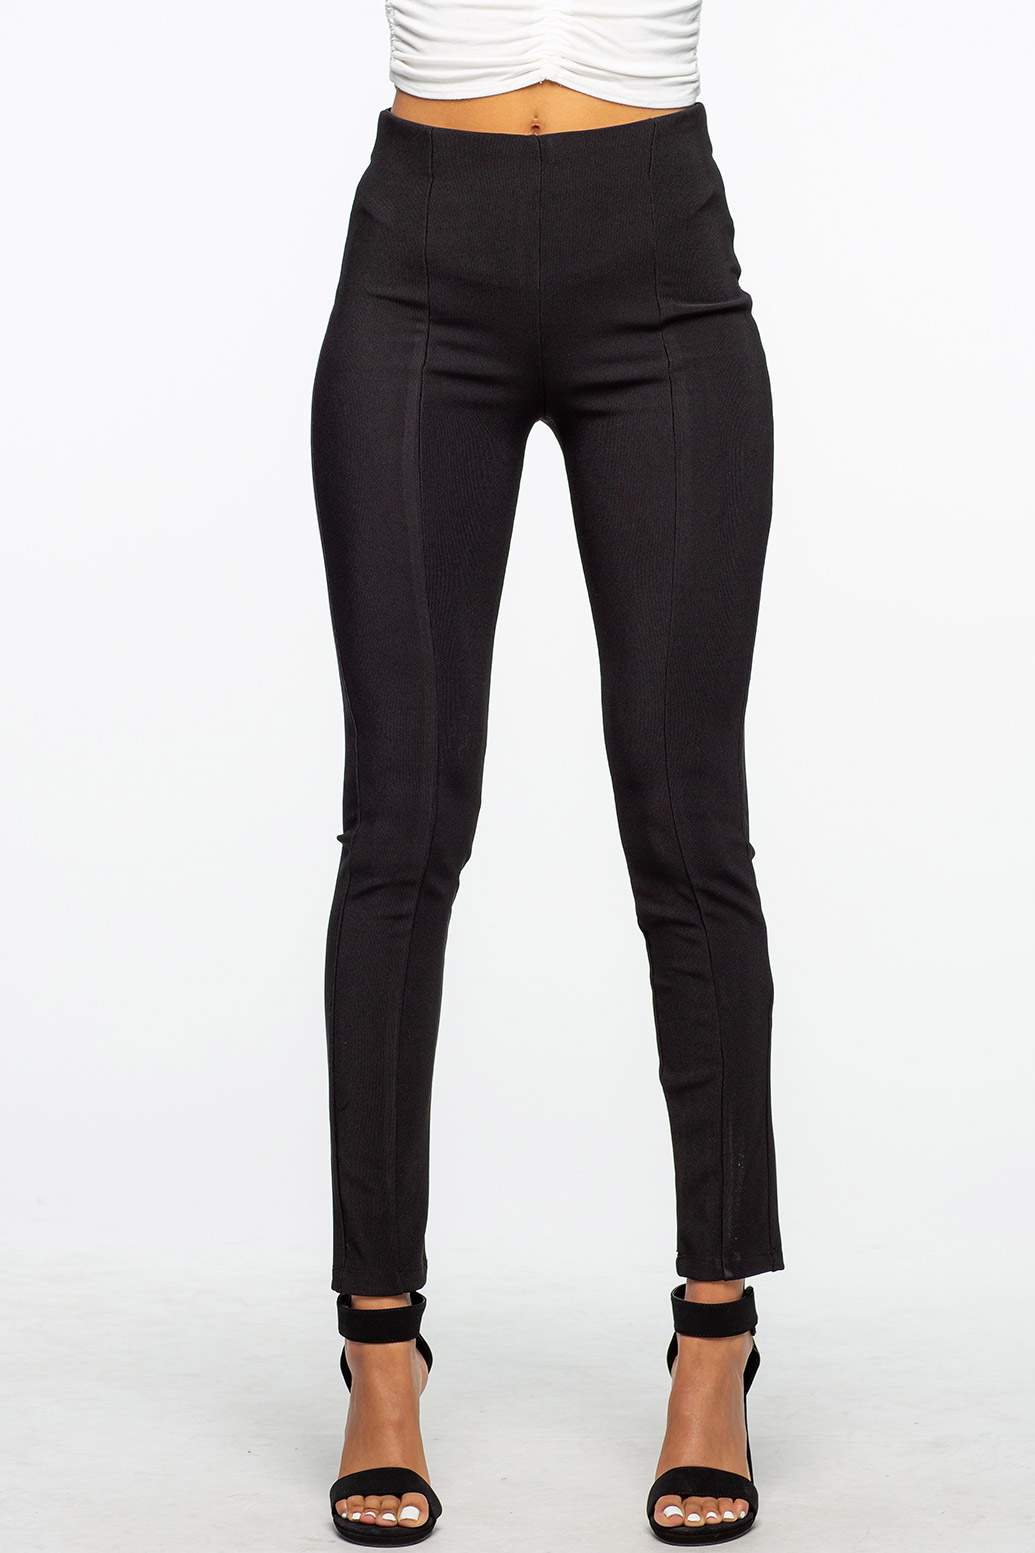 Black Skinny Stretchy Bidded Dressy Pants